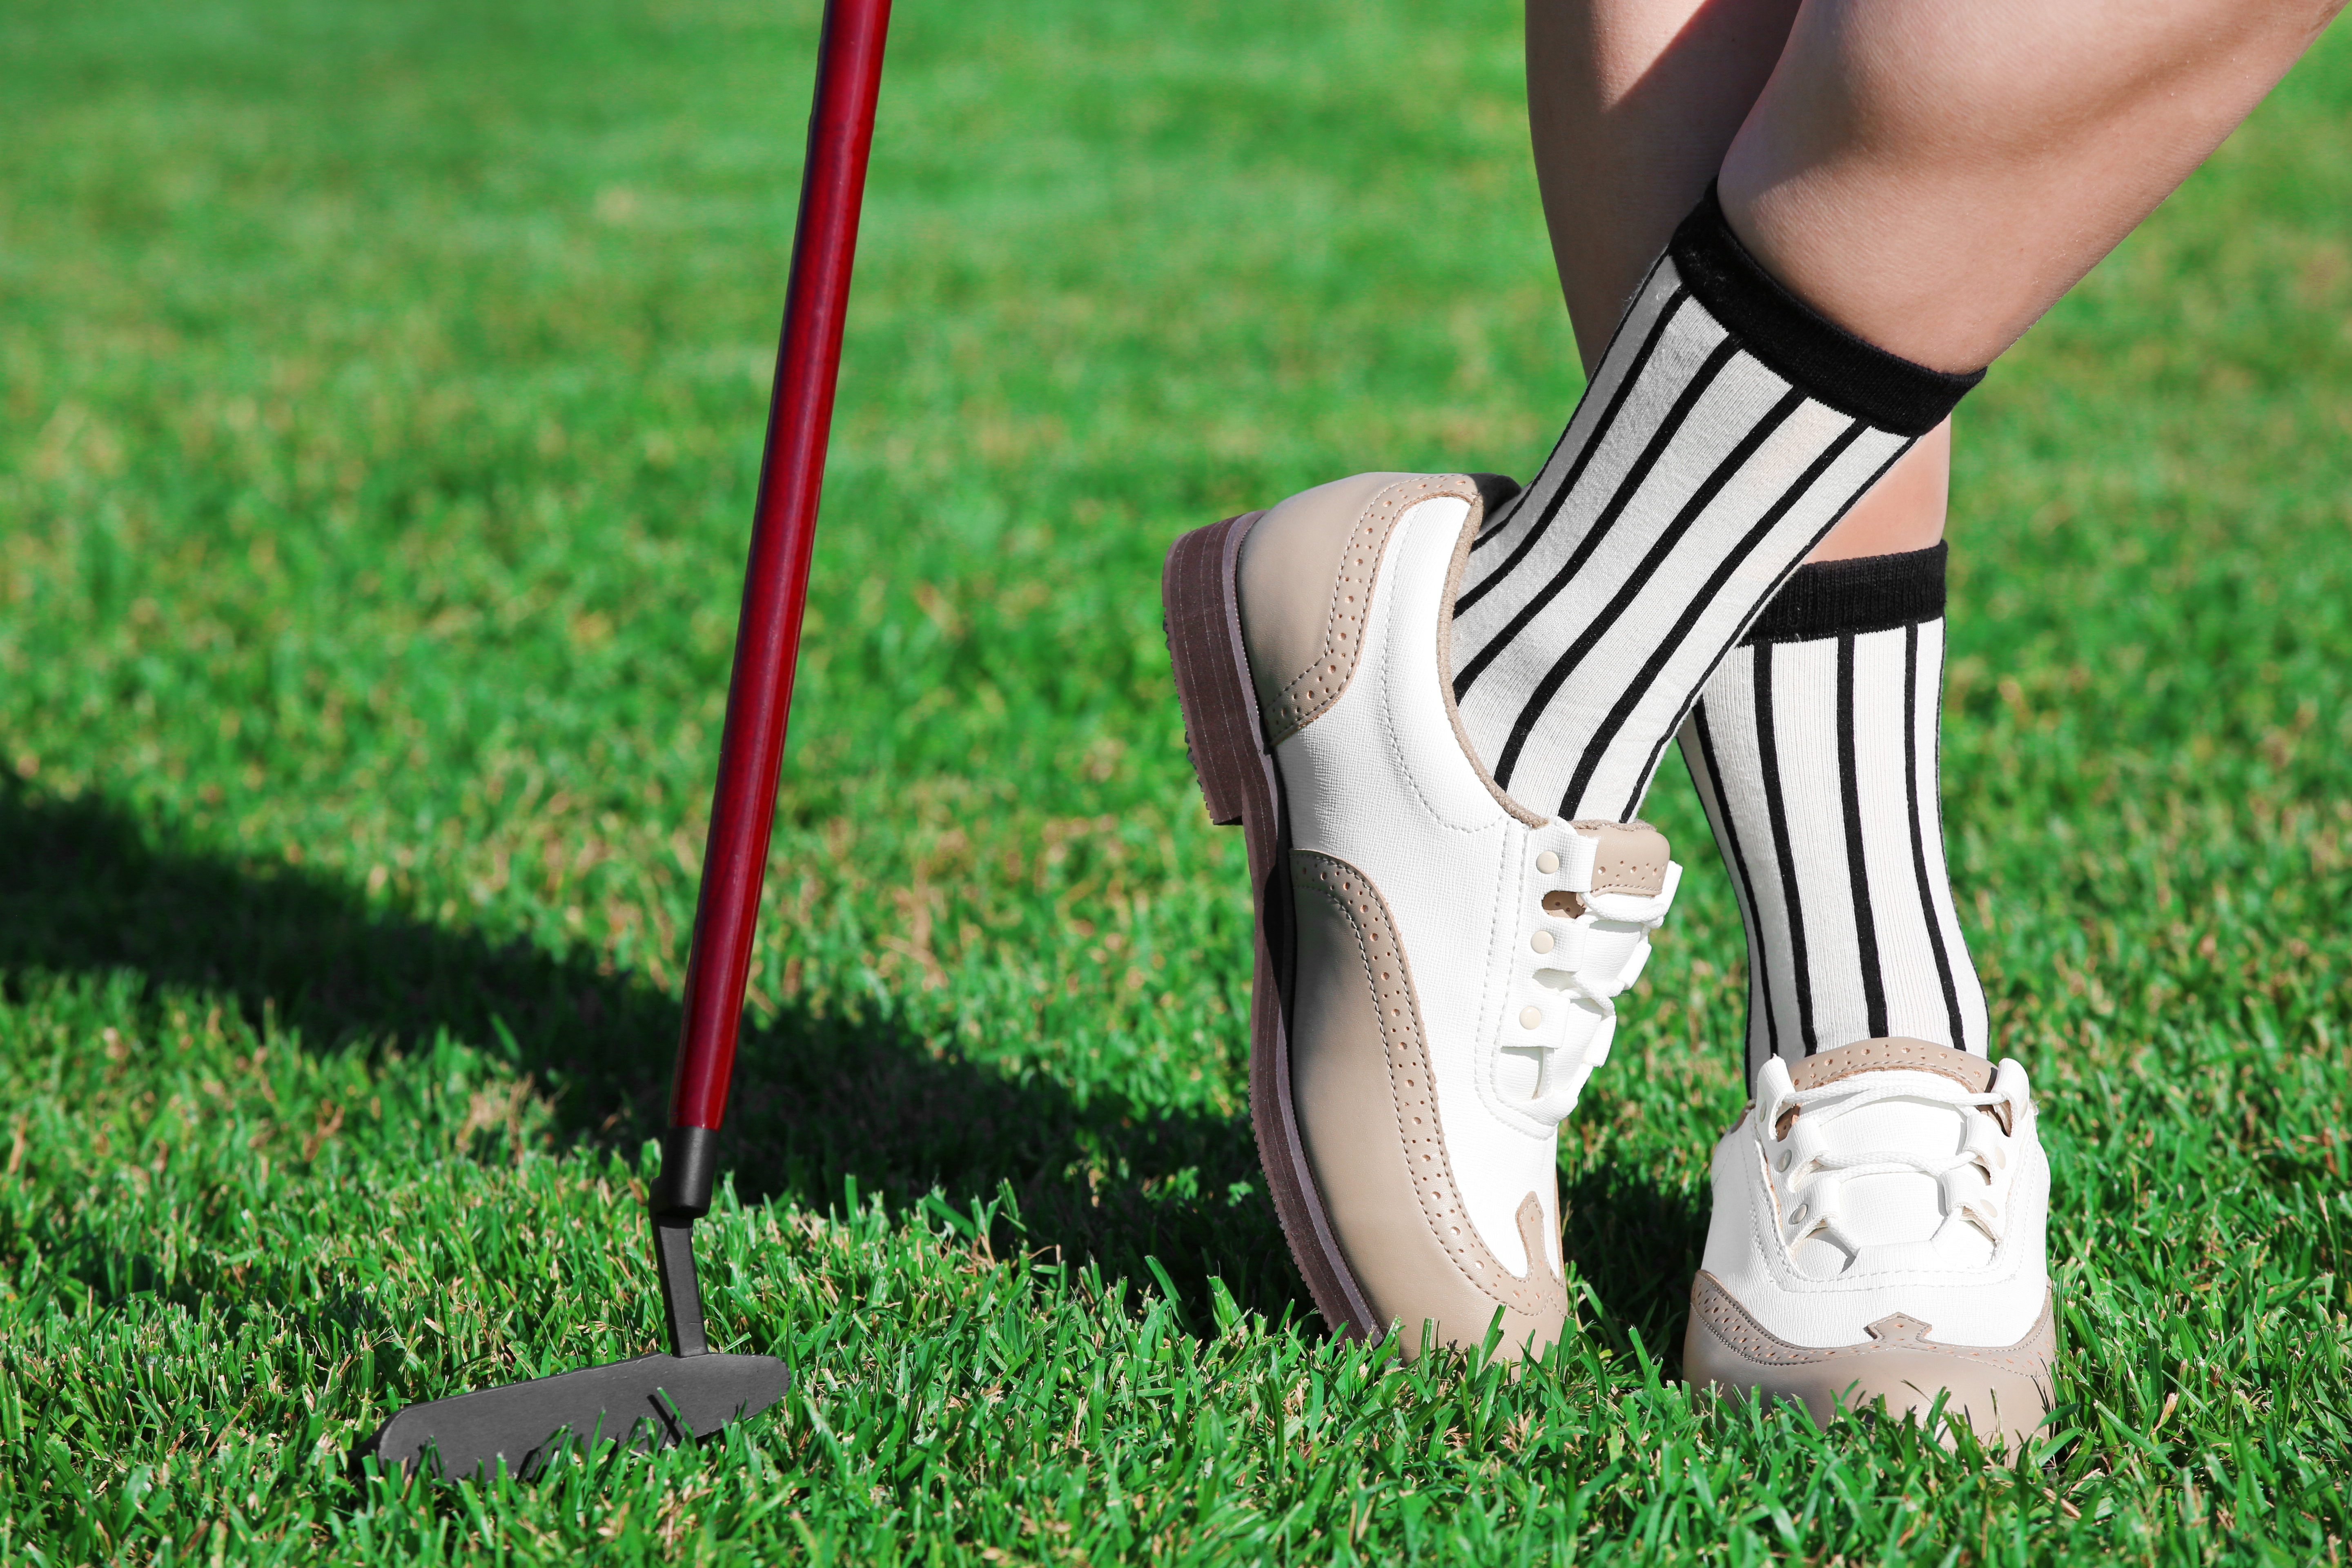 Golf socks